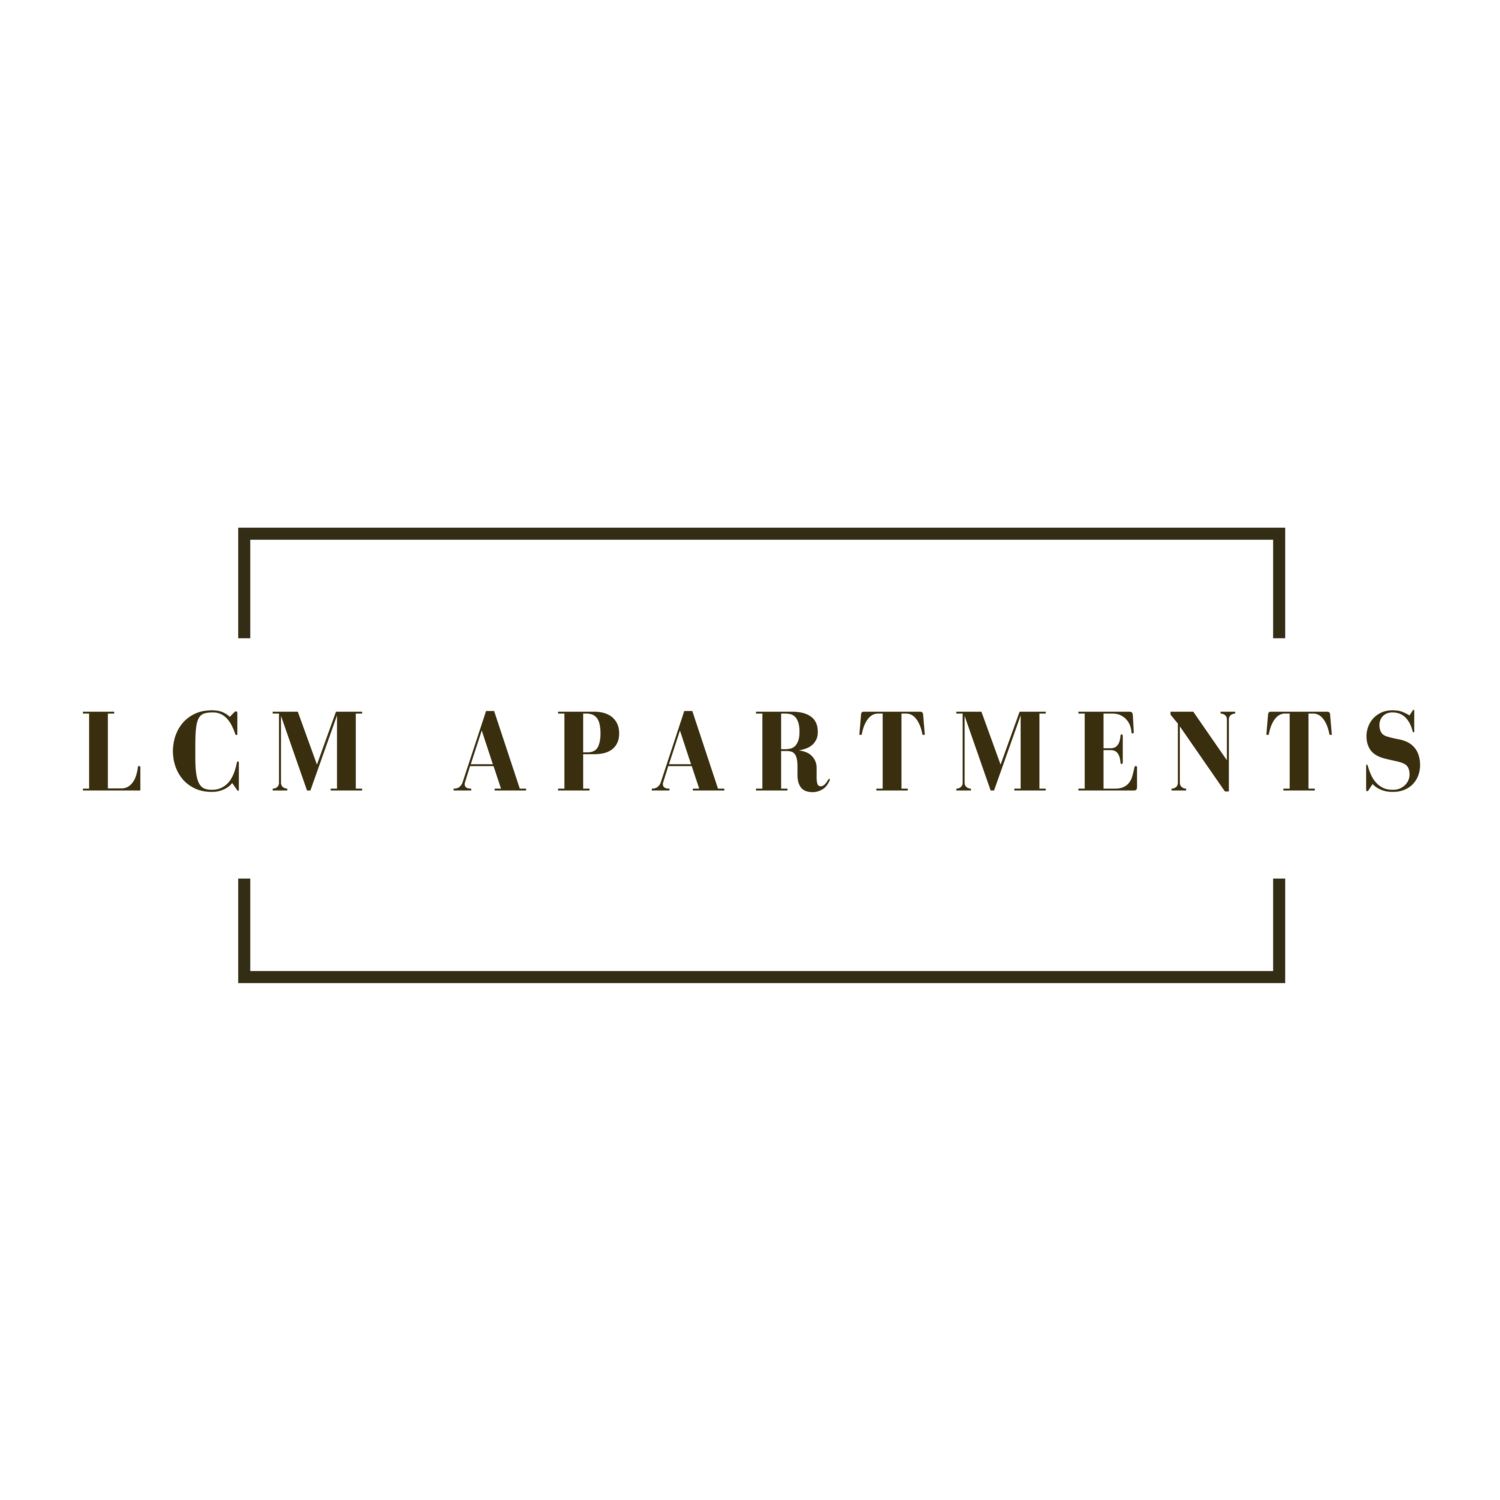 LCM Apartments